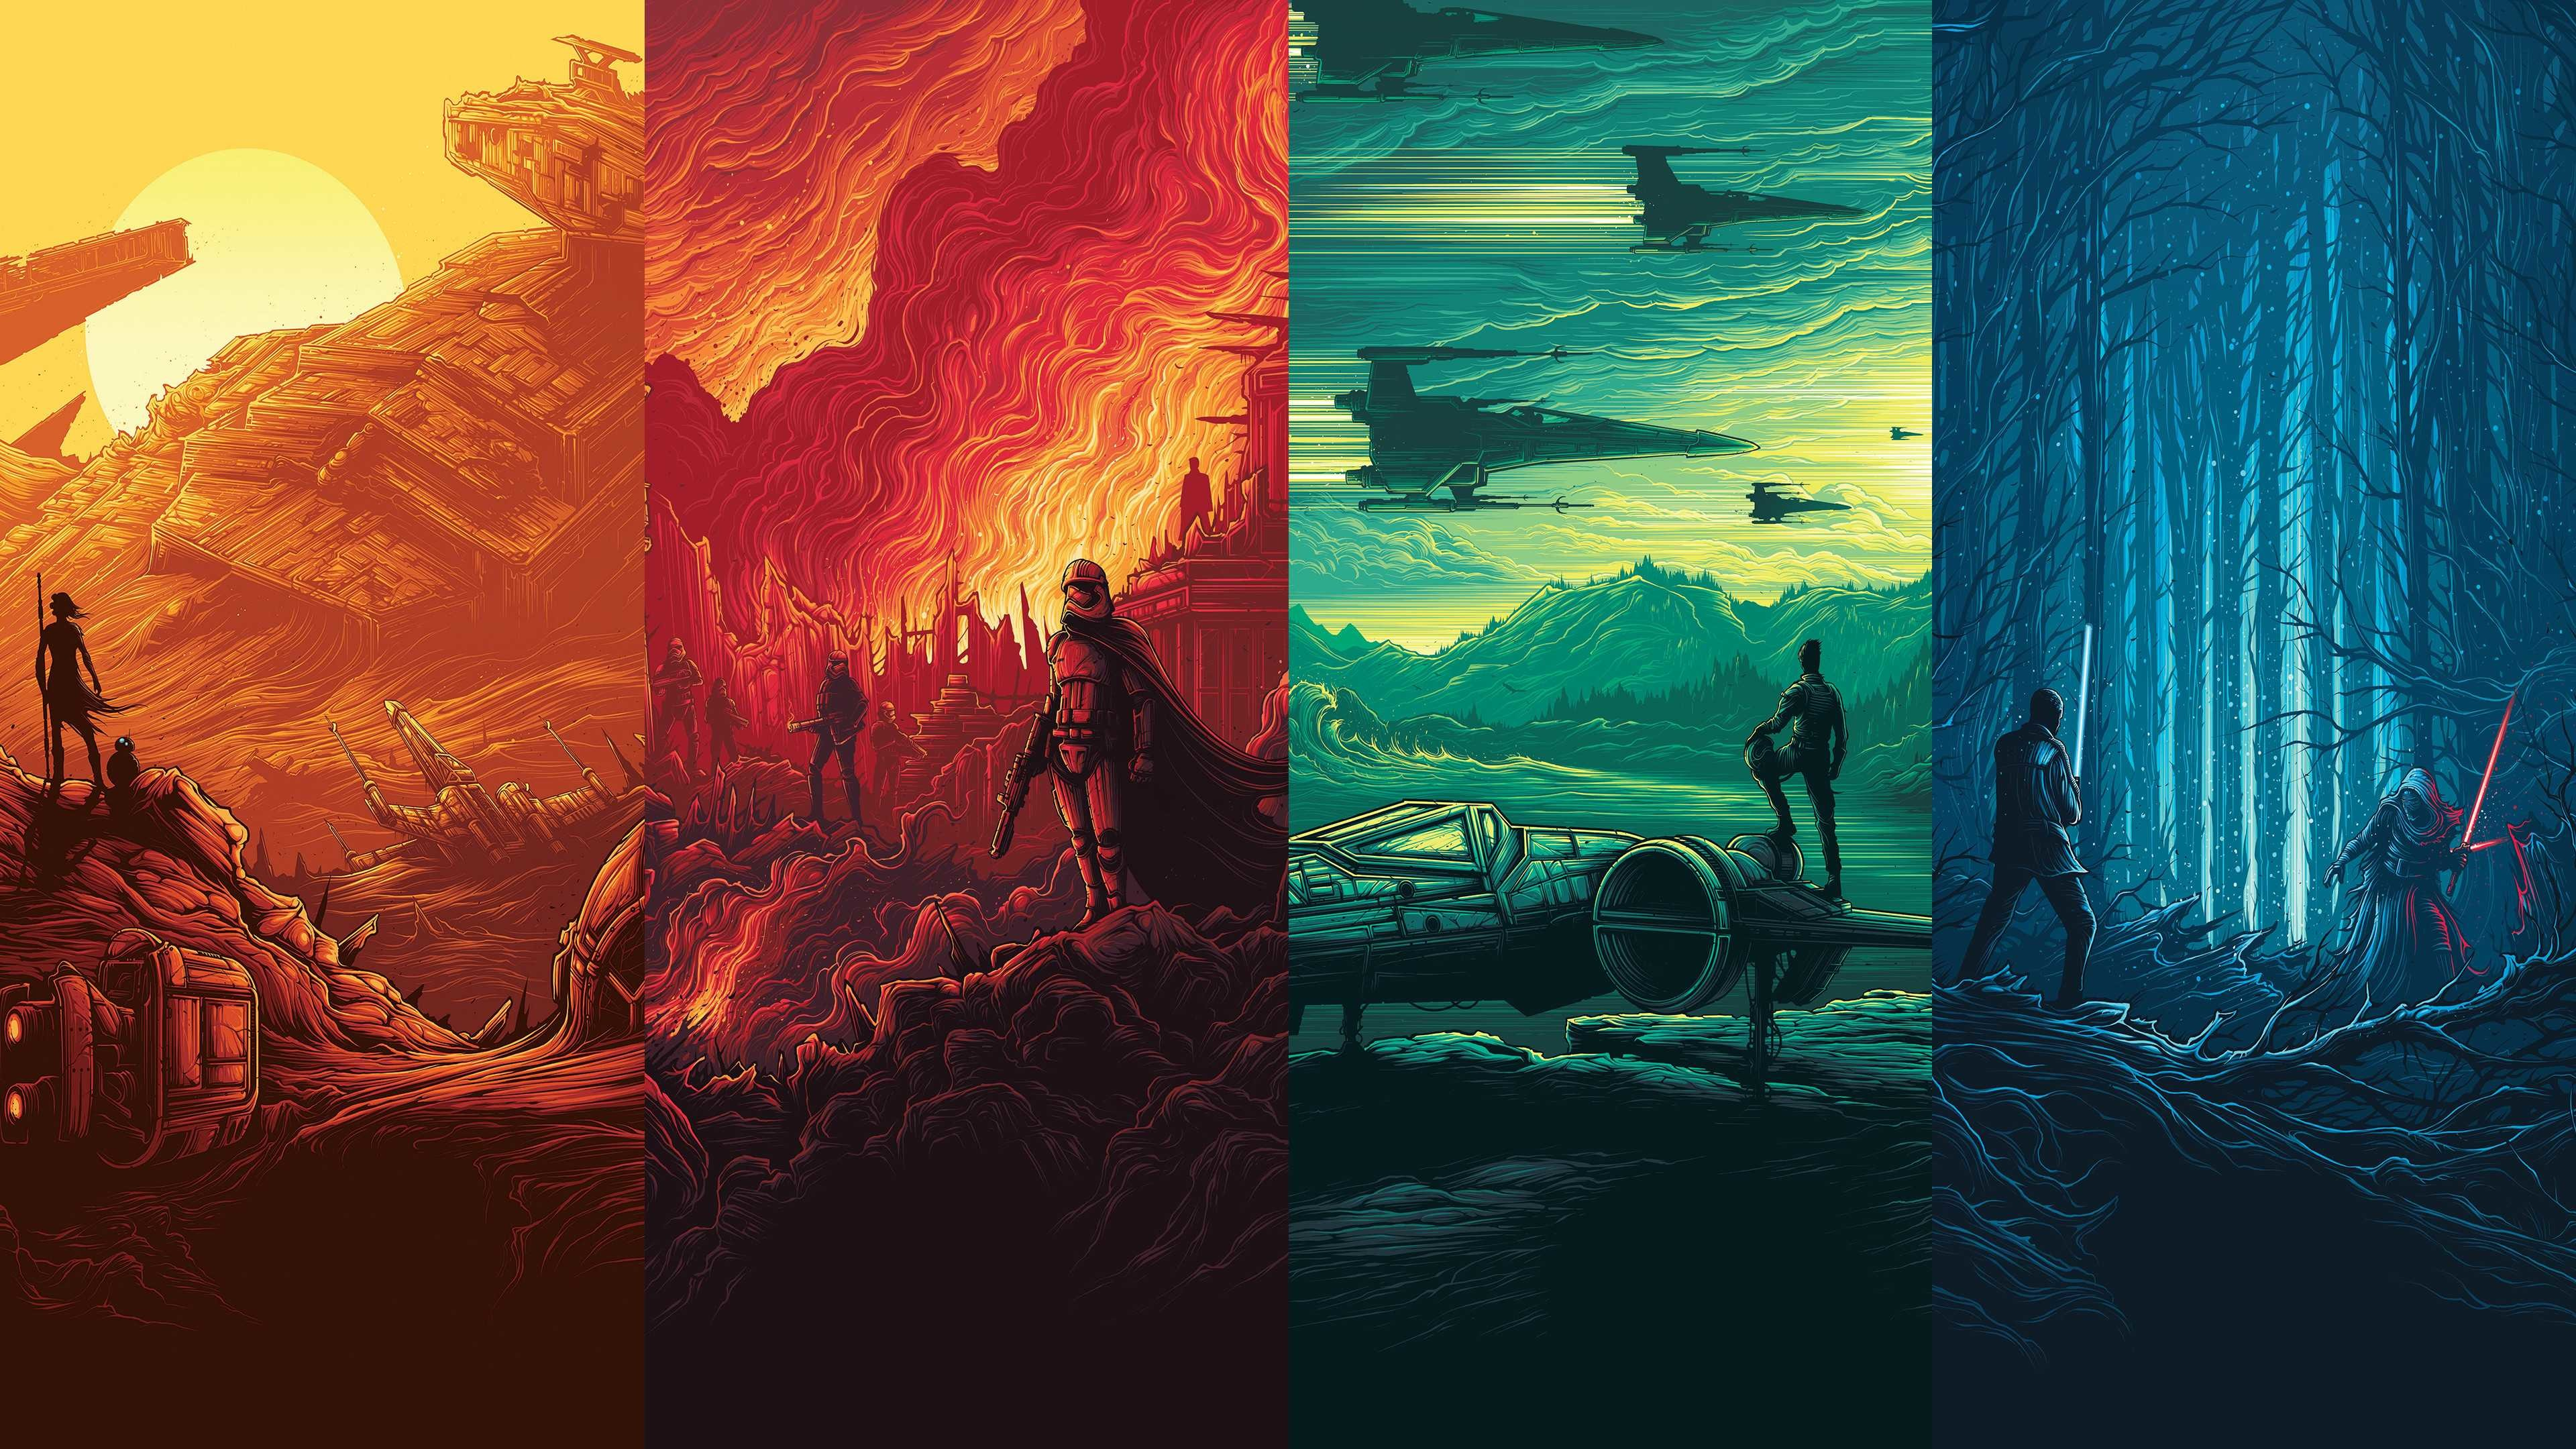 Res: 3840x2160, Epic Star Wars Wallpaper Full Hd High Resolution For Iphone Made Of Those  Imax Posters Album On